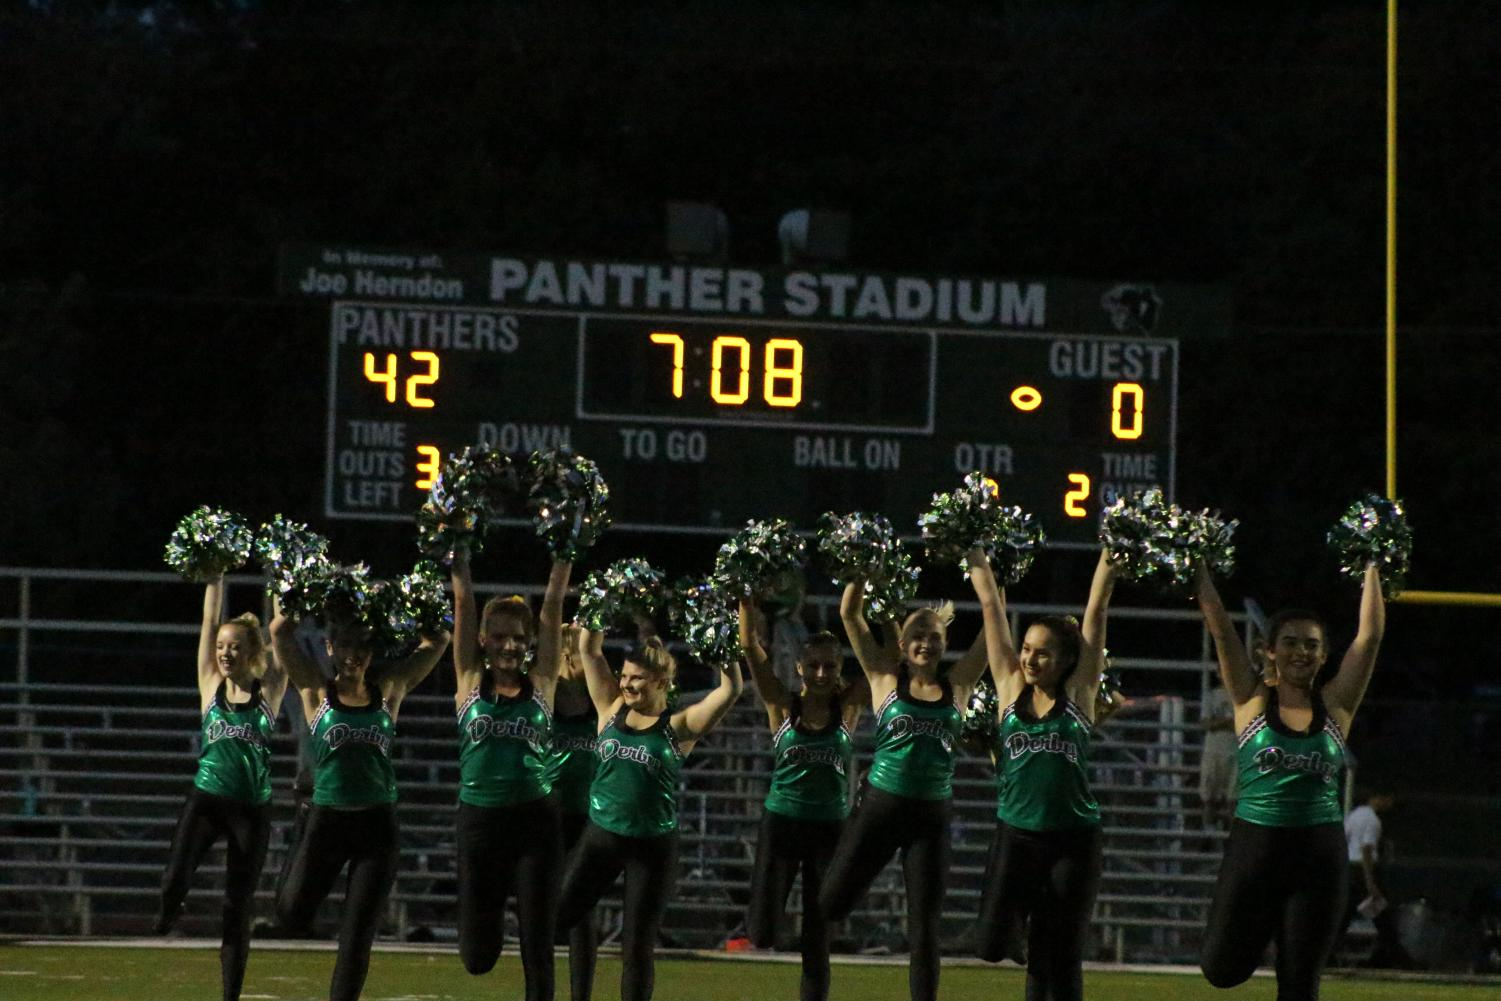 The Pantherettes perform at halftime, with Derby winning 42-0.